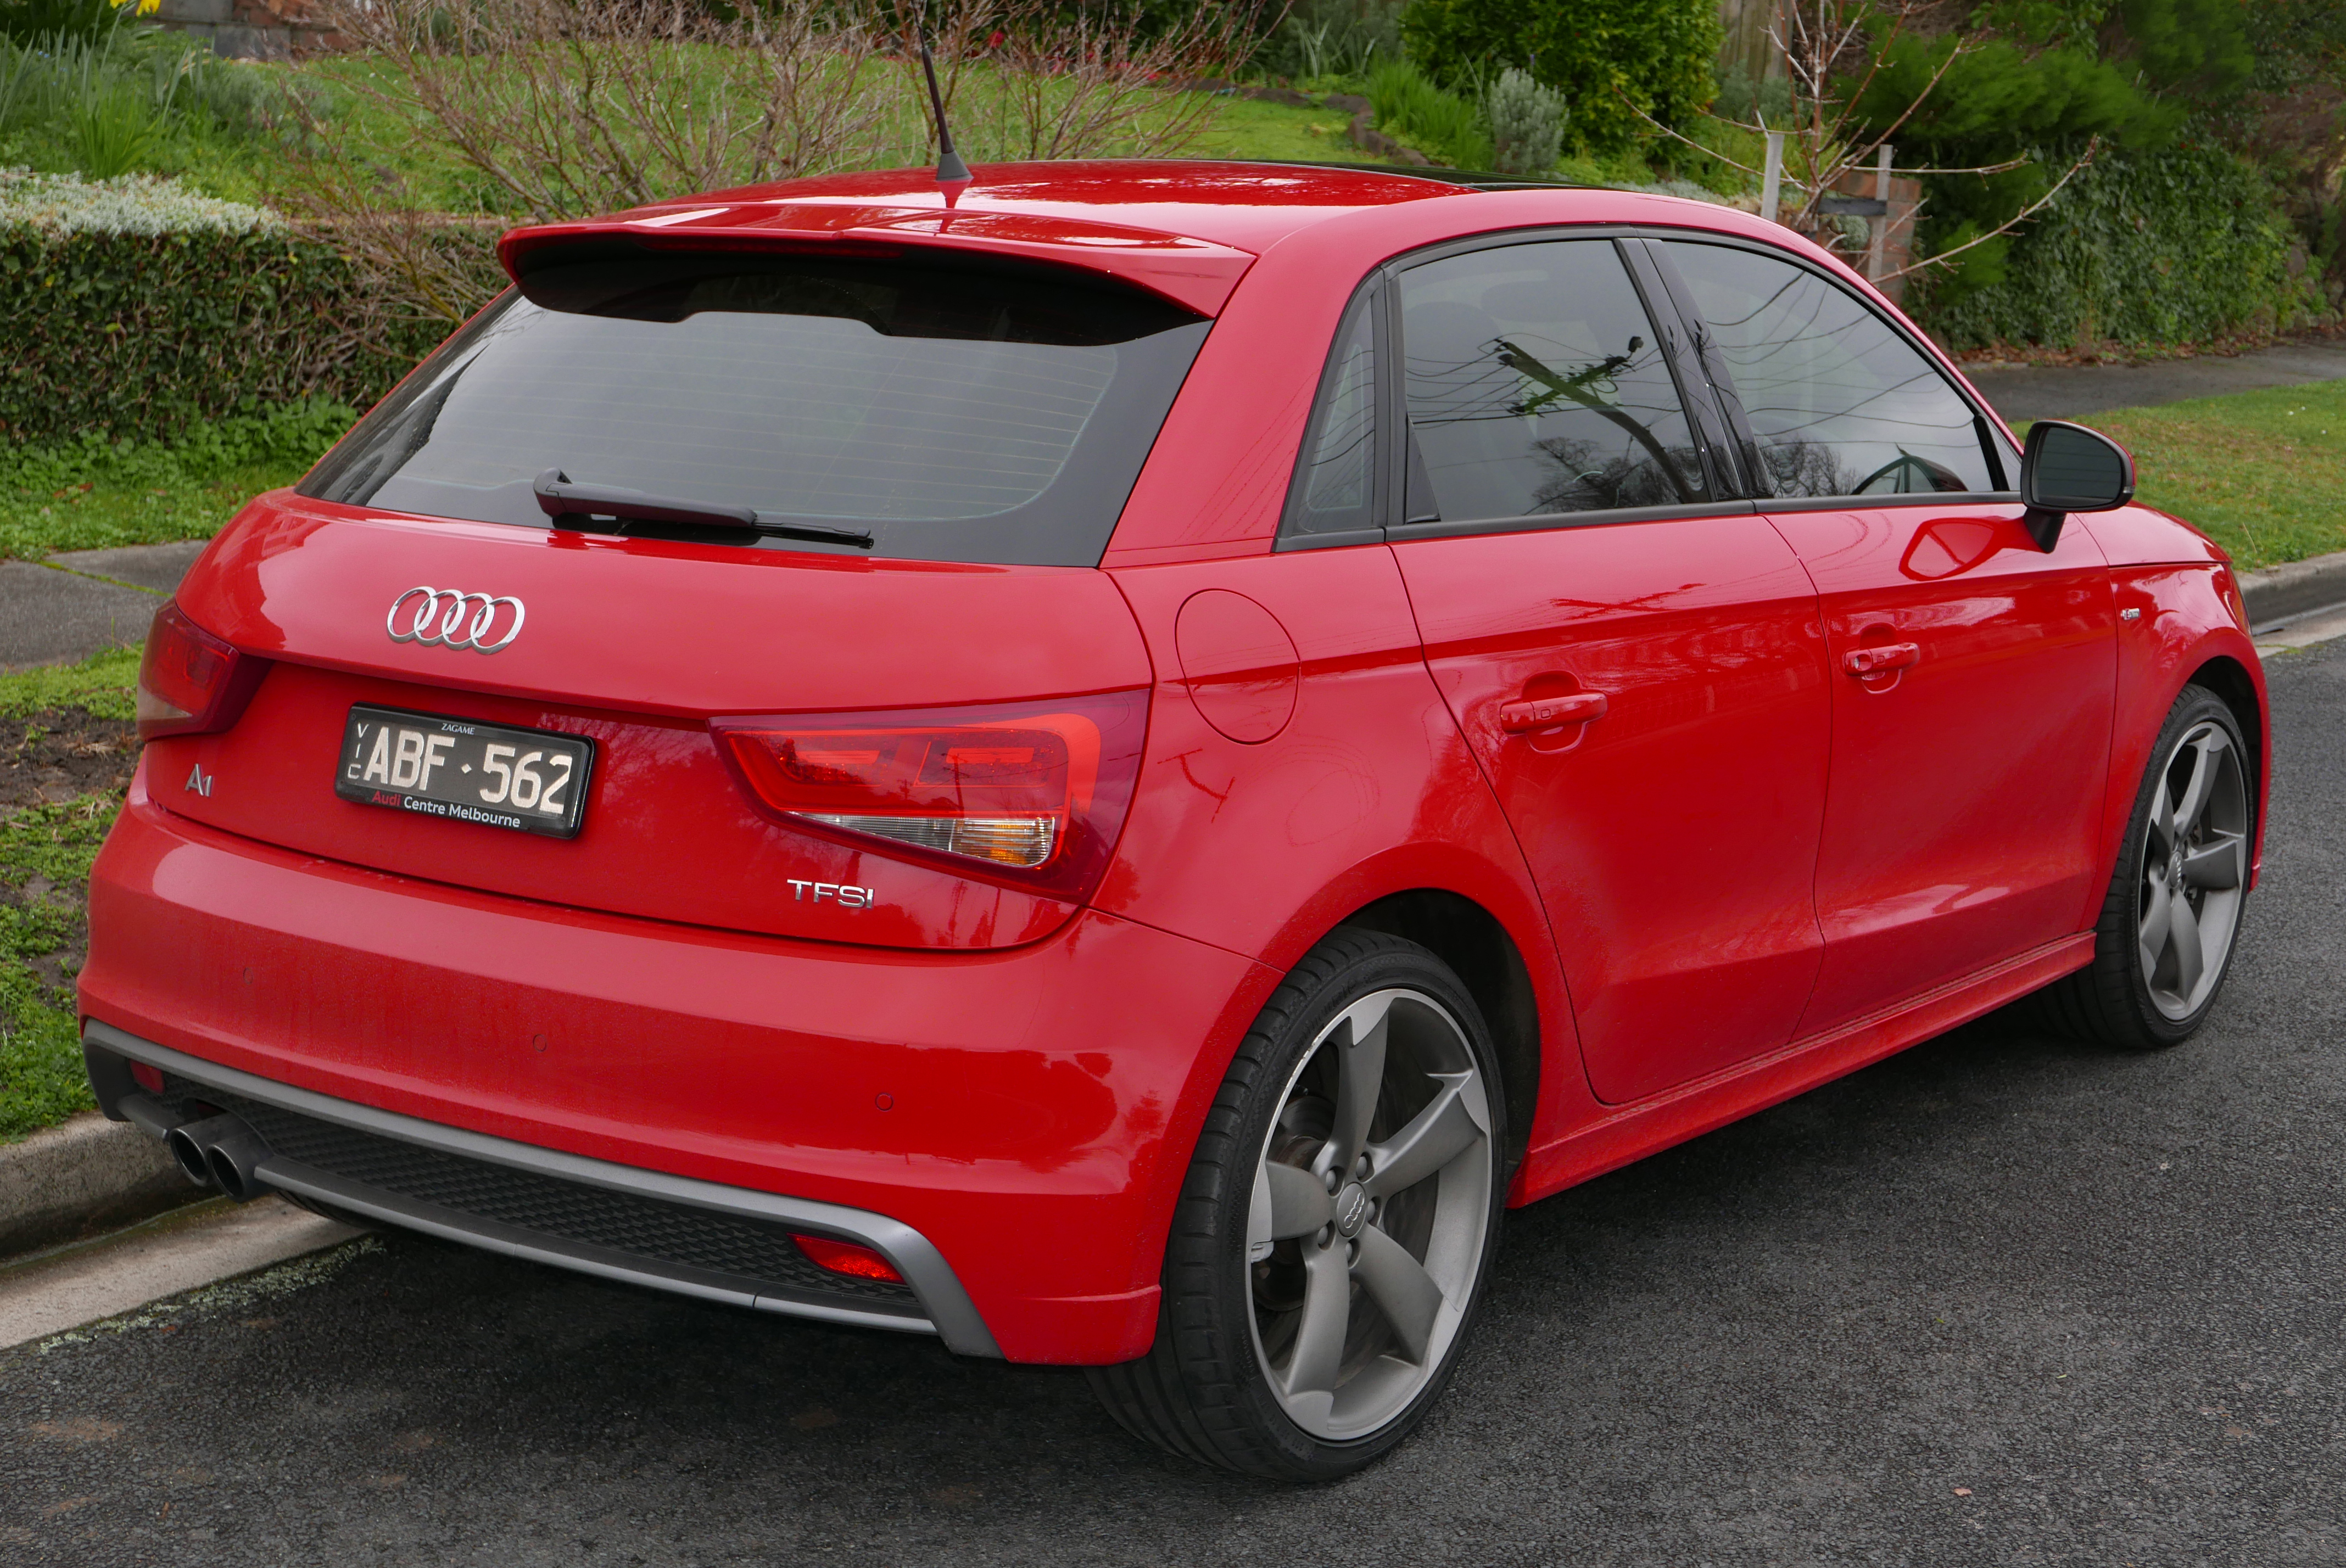 2013 audi a1 8x my14 1 4 tfsi sport s line. Black Bedroom Furniture Sets. Home Design Ideas